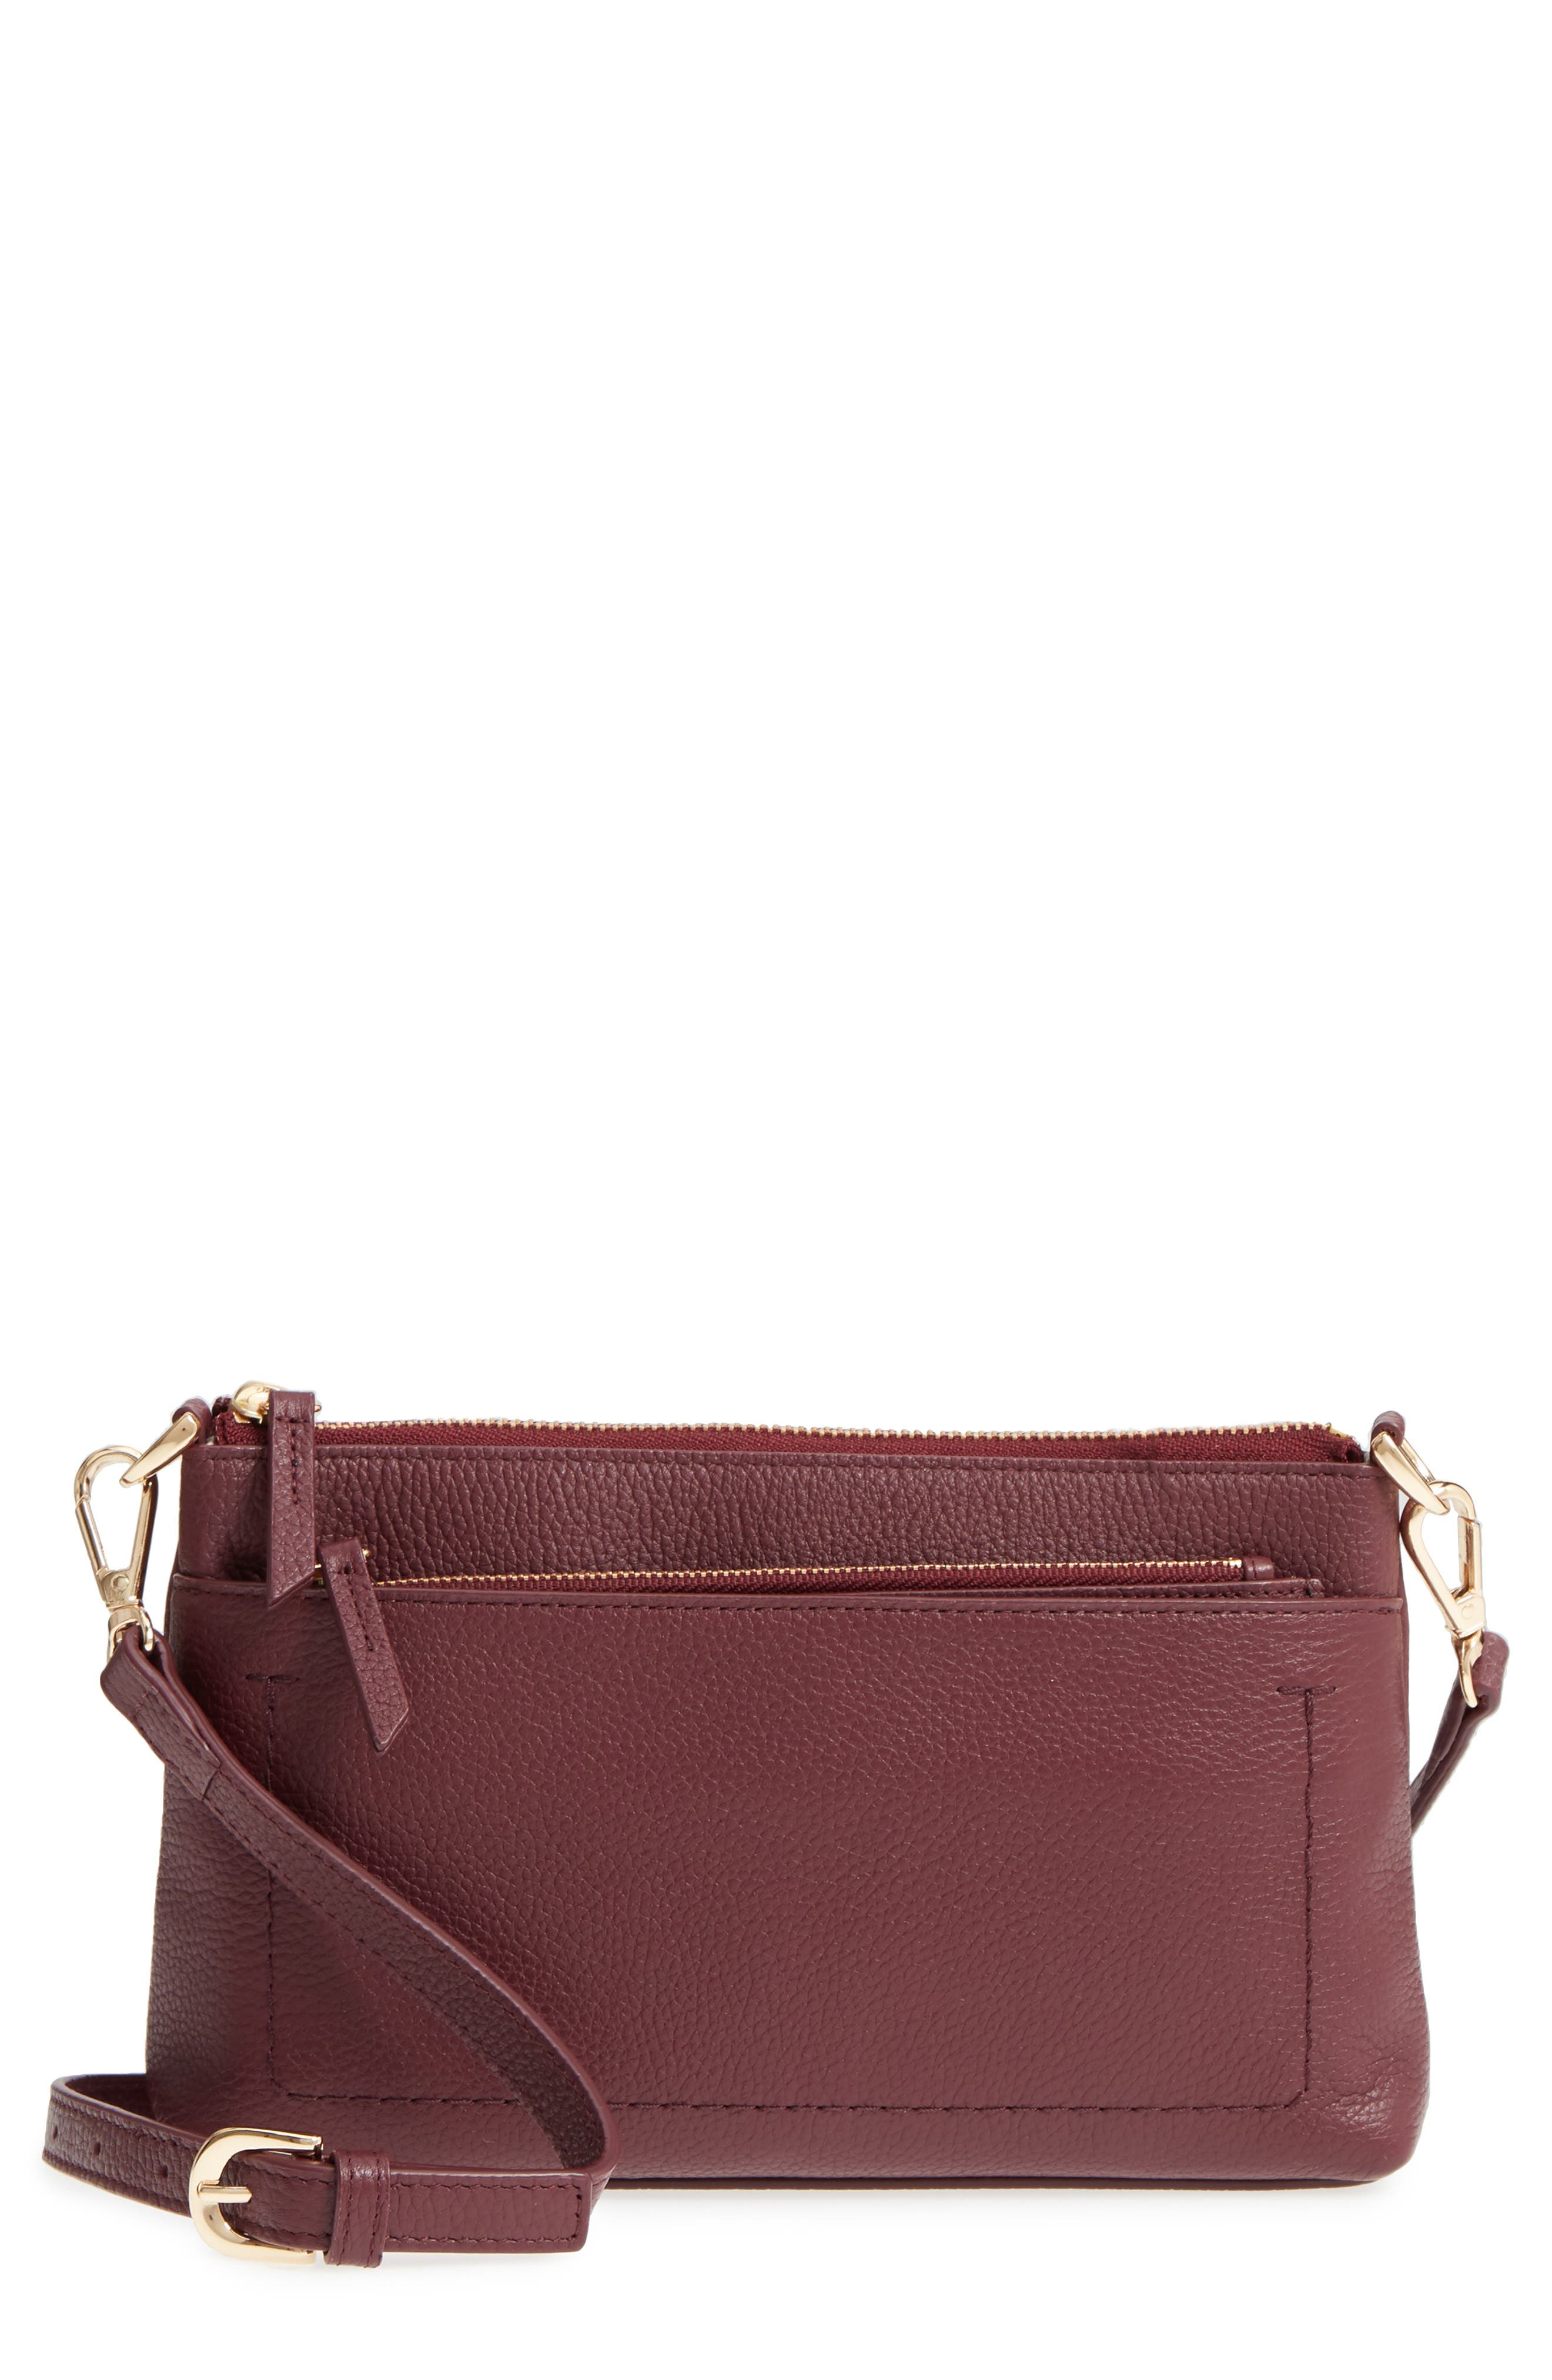 Brixton Convertible Leather Crossbody Bag with Pop-Out Card Holder,                             Main thumbnail 1, color,                             Burgundy London